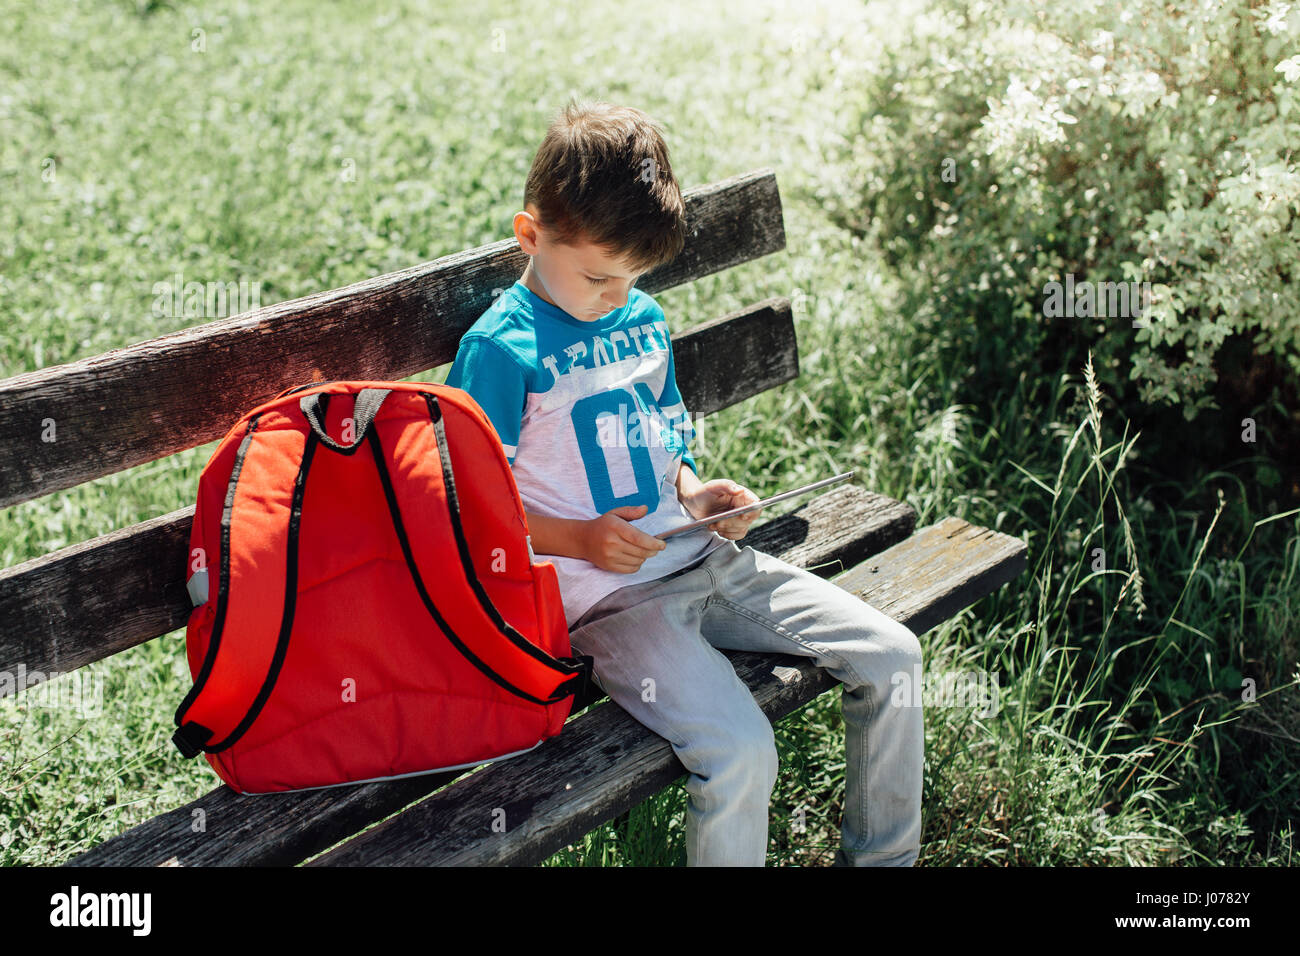 Schoolboy taking a break playing with a tablet on a bench - Stock Image